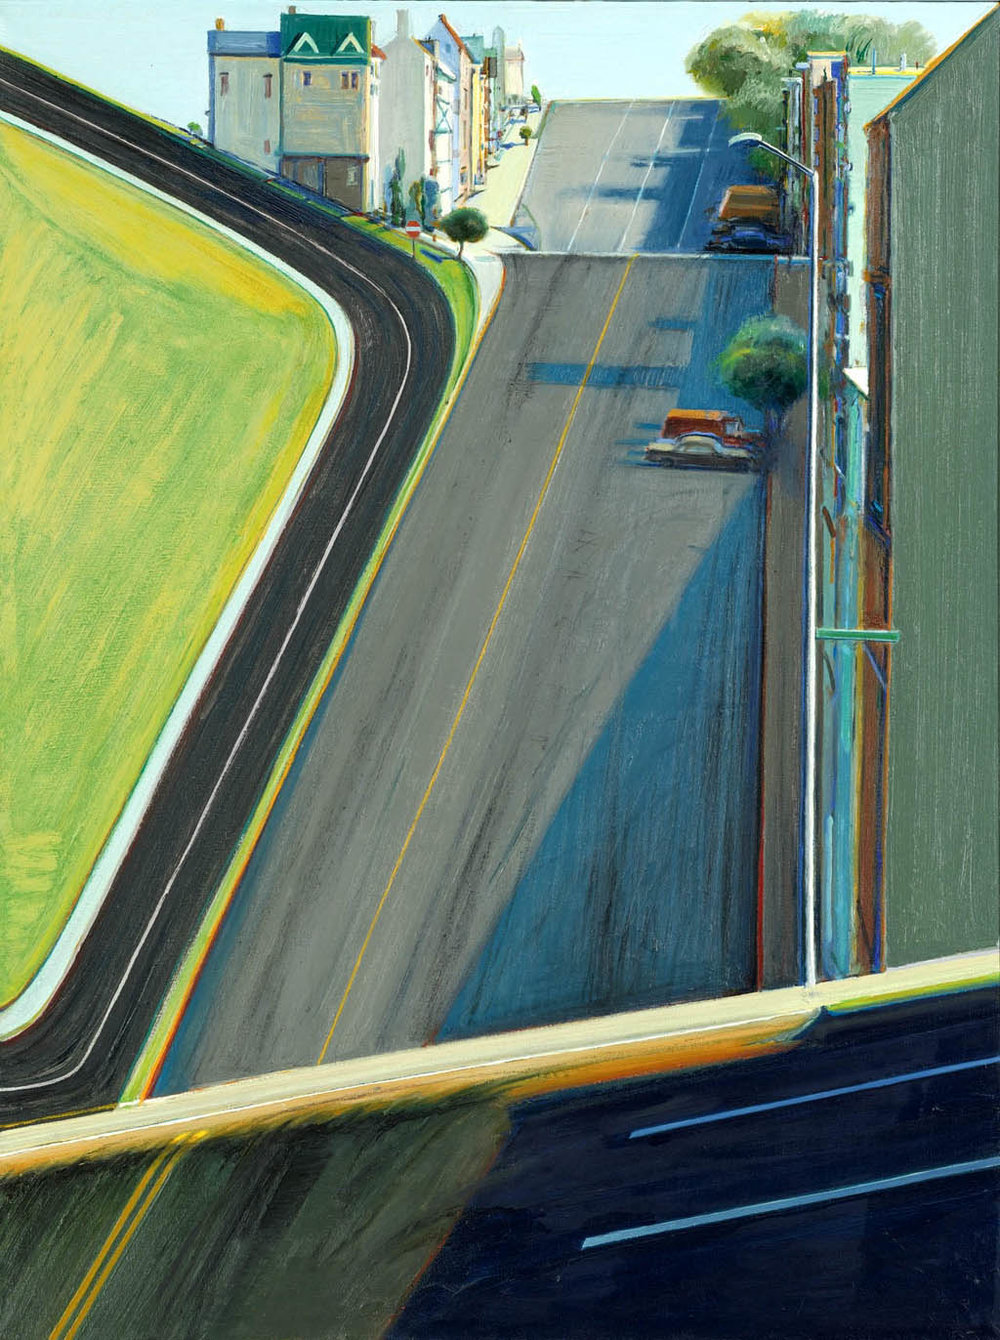 Wayne Thiebaud, Down Penn Street, 1978. The plasticity of the space is of particular interest. (Hat tip to Mike Hirshon for the citation.)